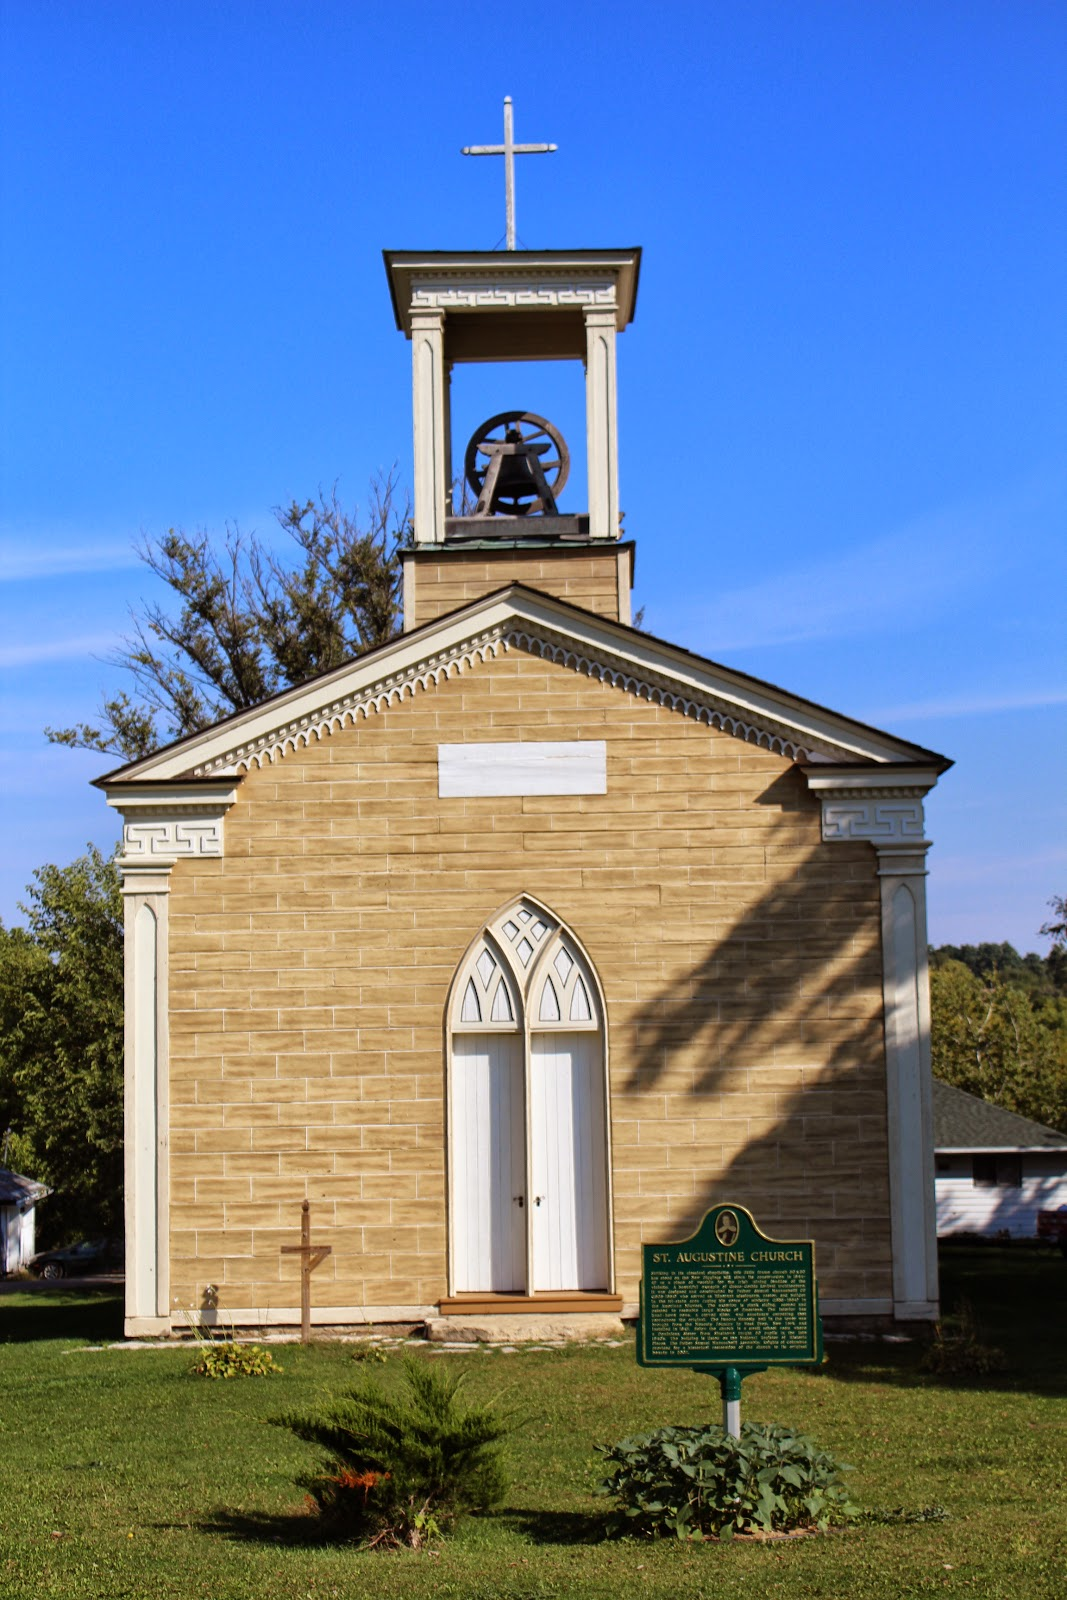 wisconsin historical markers st augustine church. Black Bedroom Furniture Sets. Home Design Ideas